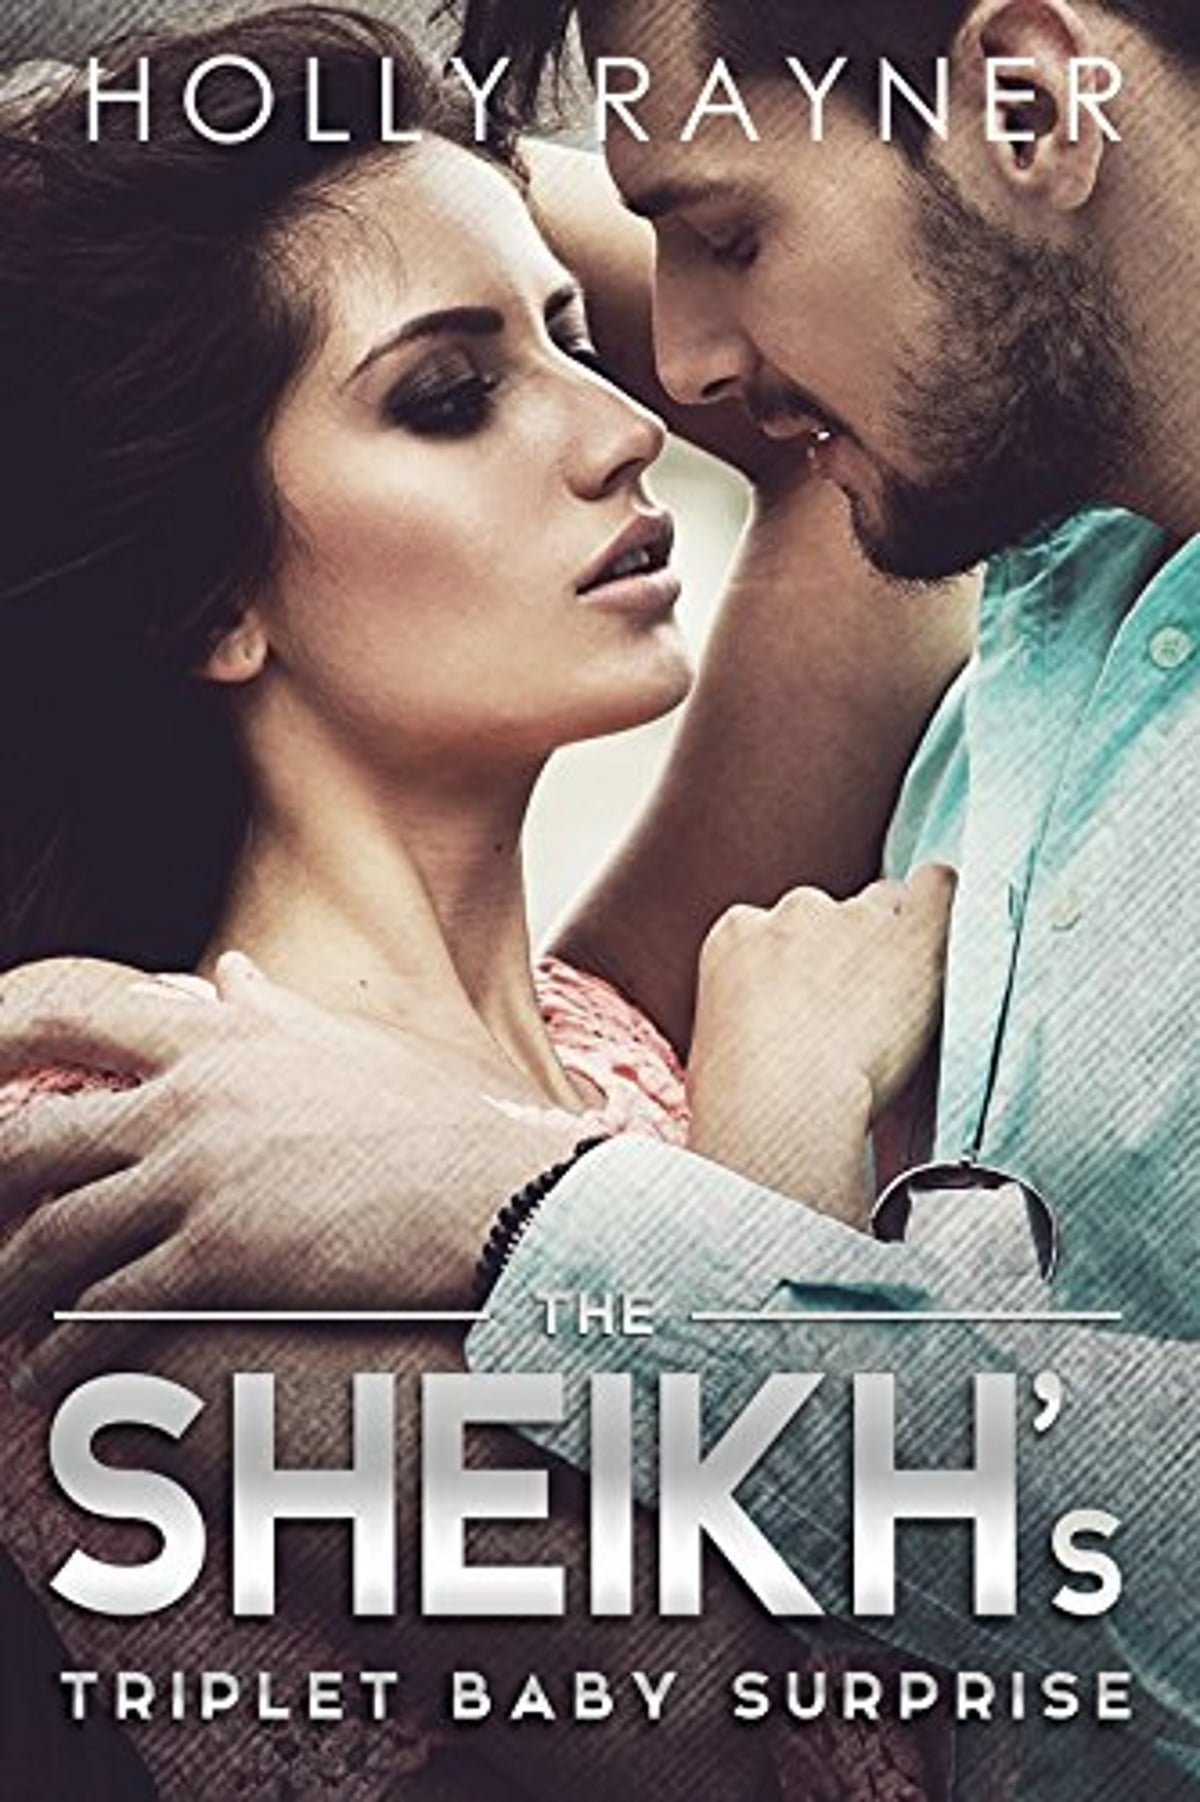 The sheikhs triplet baby surprise ebook by holly rayner the sheikhs triplet baby surprise ebook by holly rayner 9781370026463 rakuten kobo fandeluxe Ebook collections